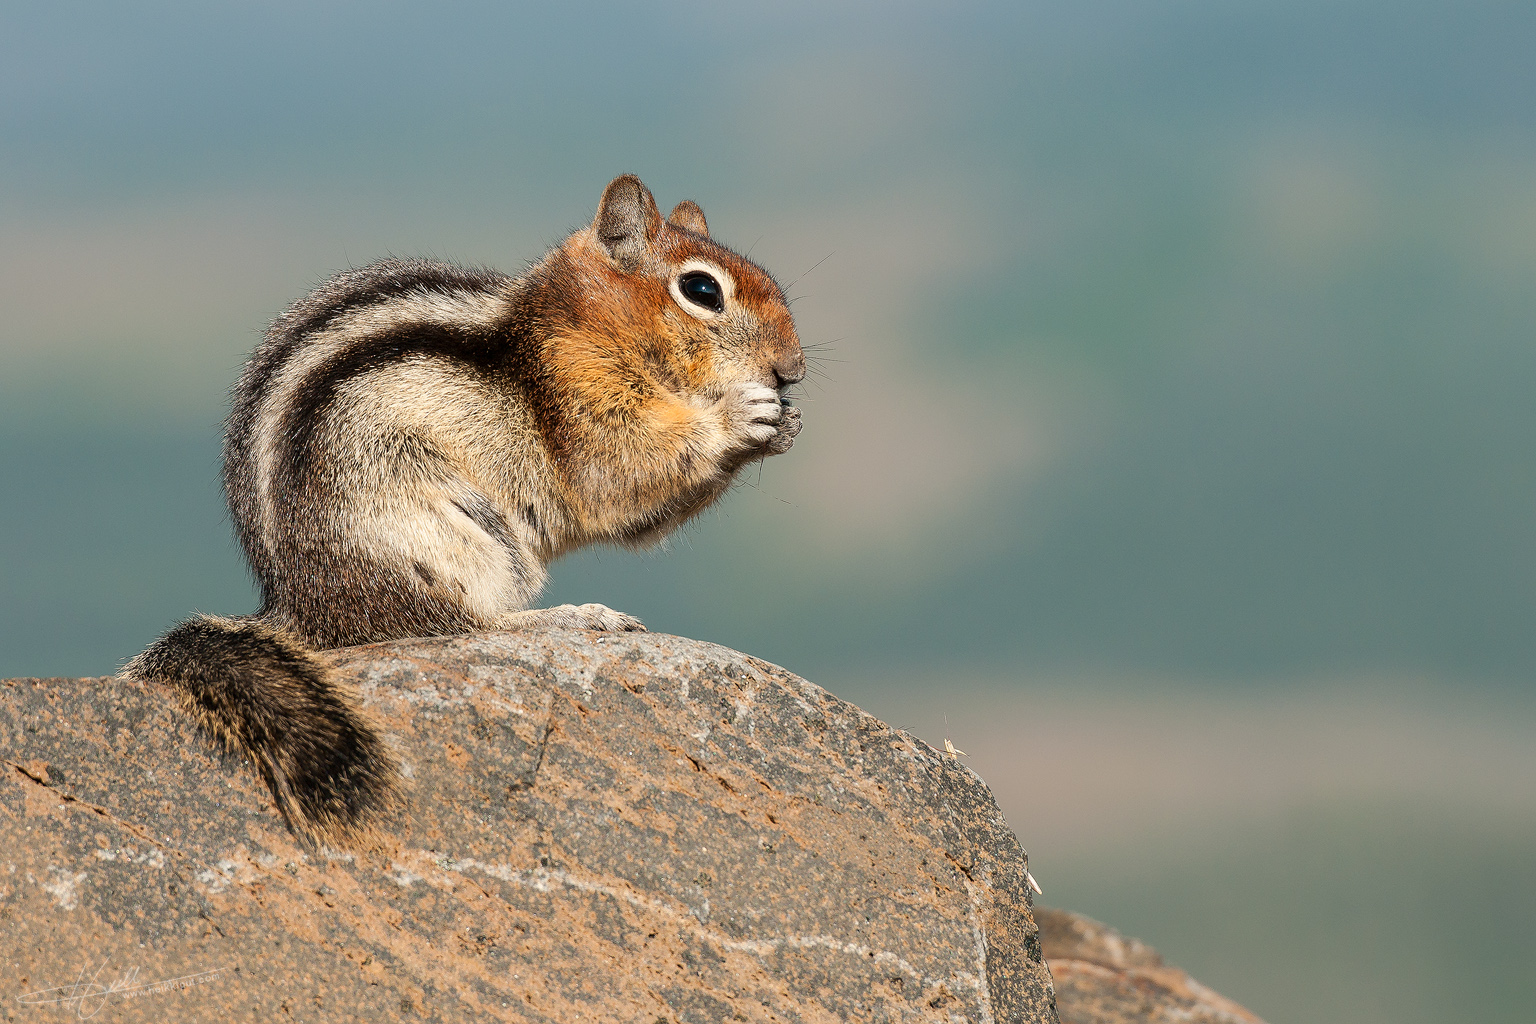 Golden-mantled ground squirrel  (Callospermophilus lateralis)  on HeikkiPut.com - Nature & Wildlife Photography